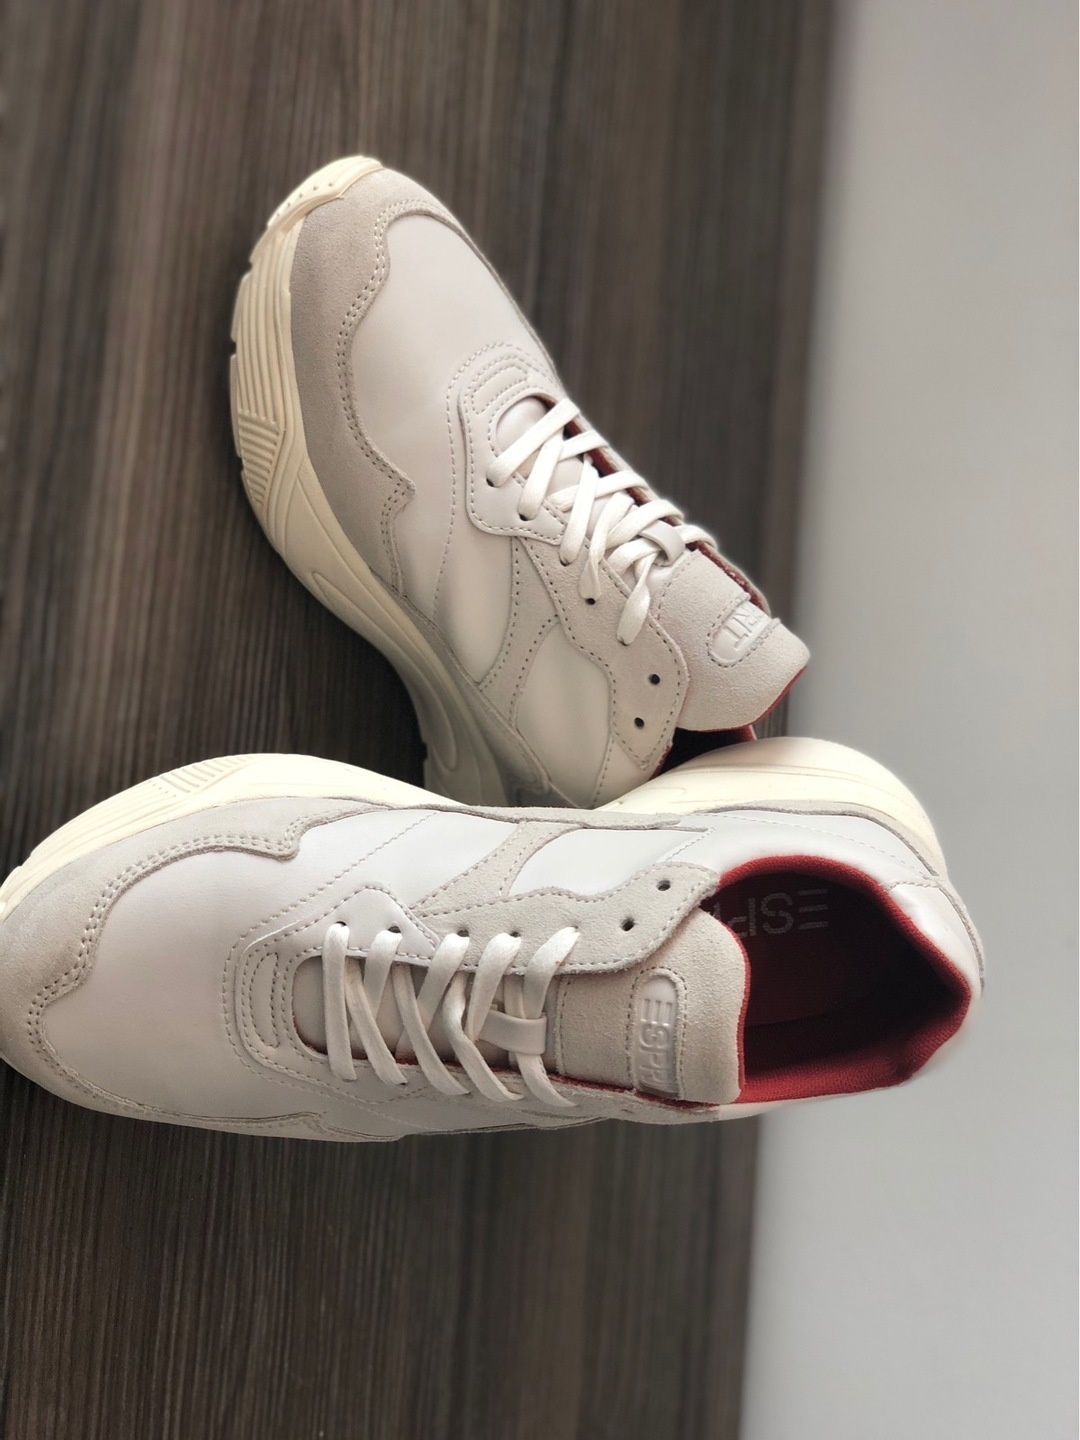 Women's sneakers - ESPRIT photo 1